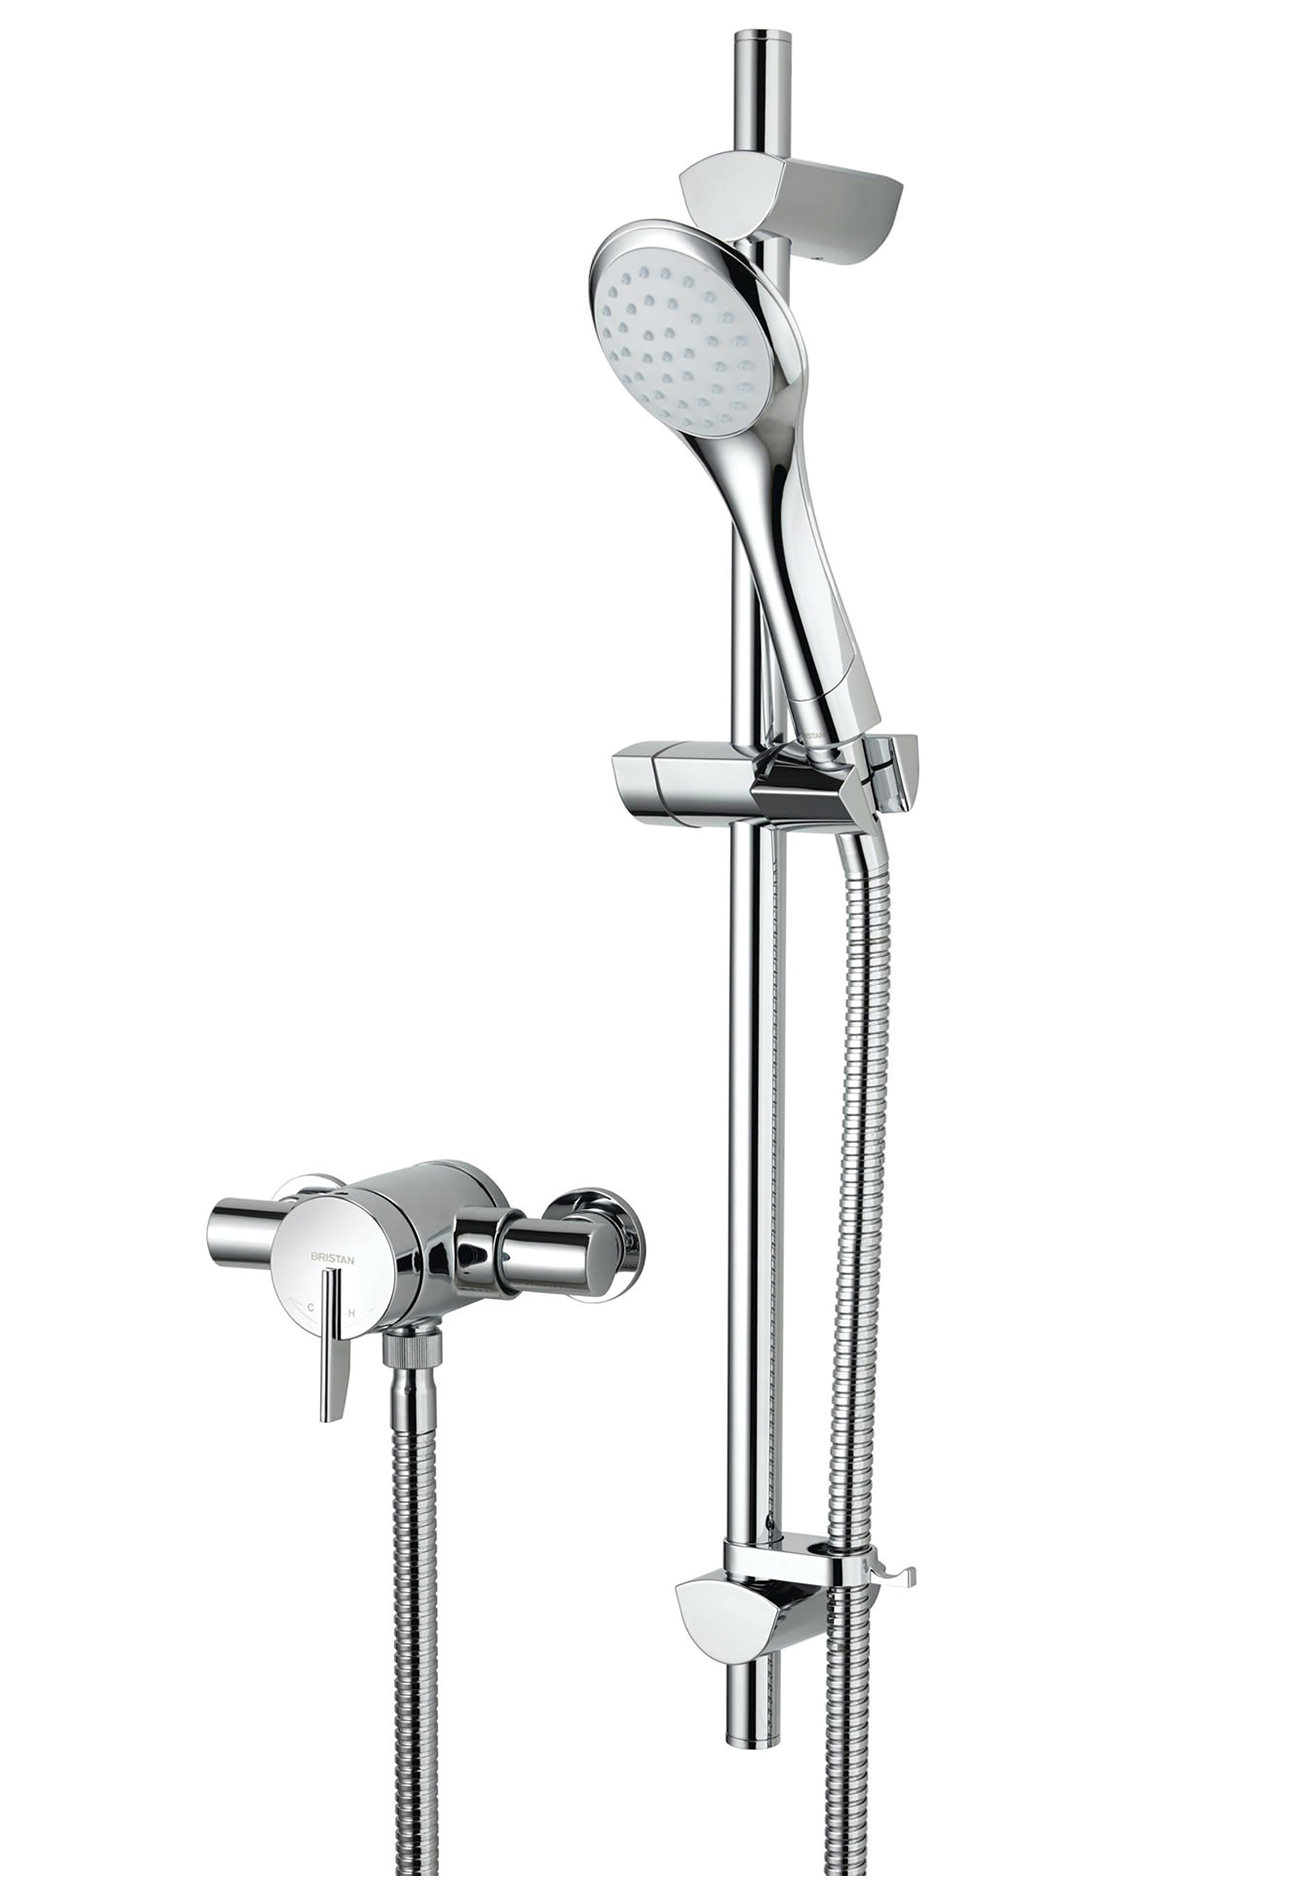 Bristan Sonqiue2 Thermostatic Shower Valve With Riser Kit